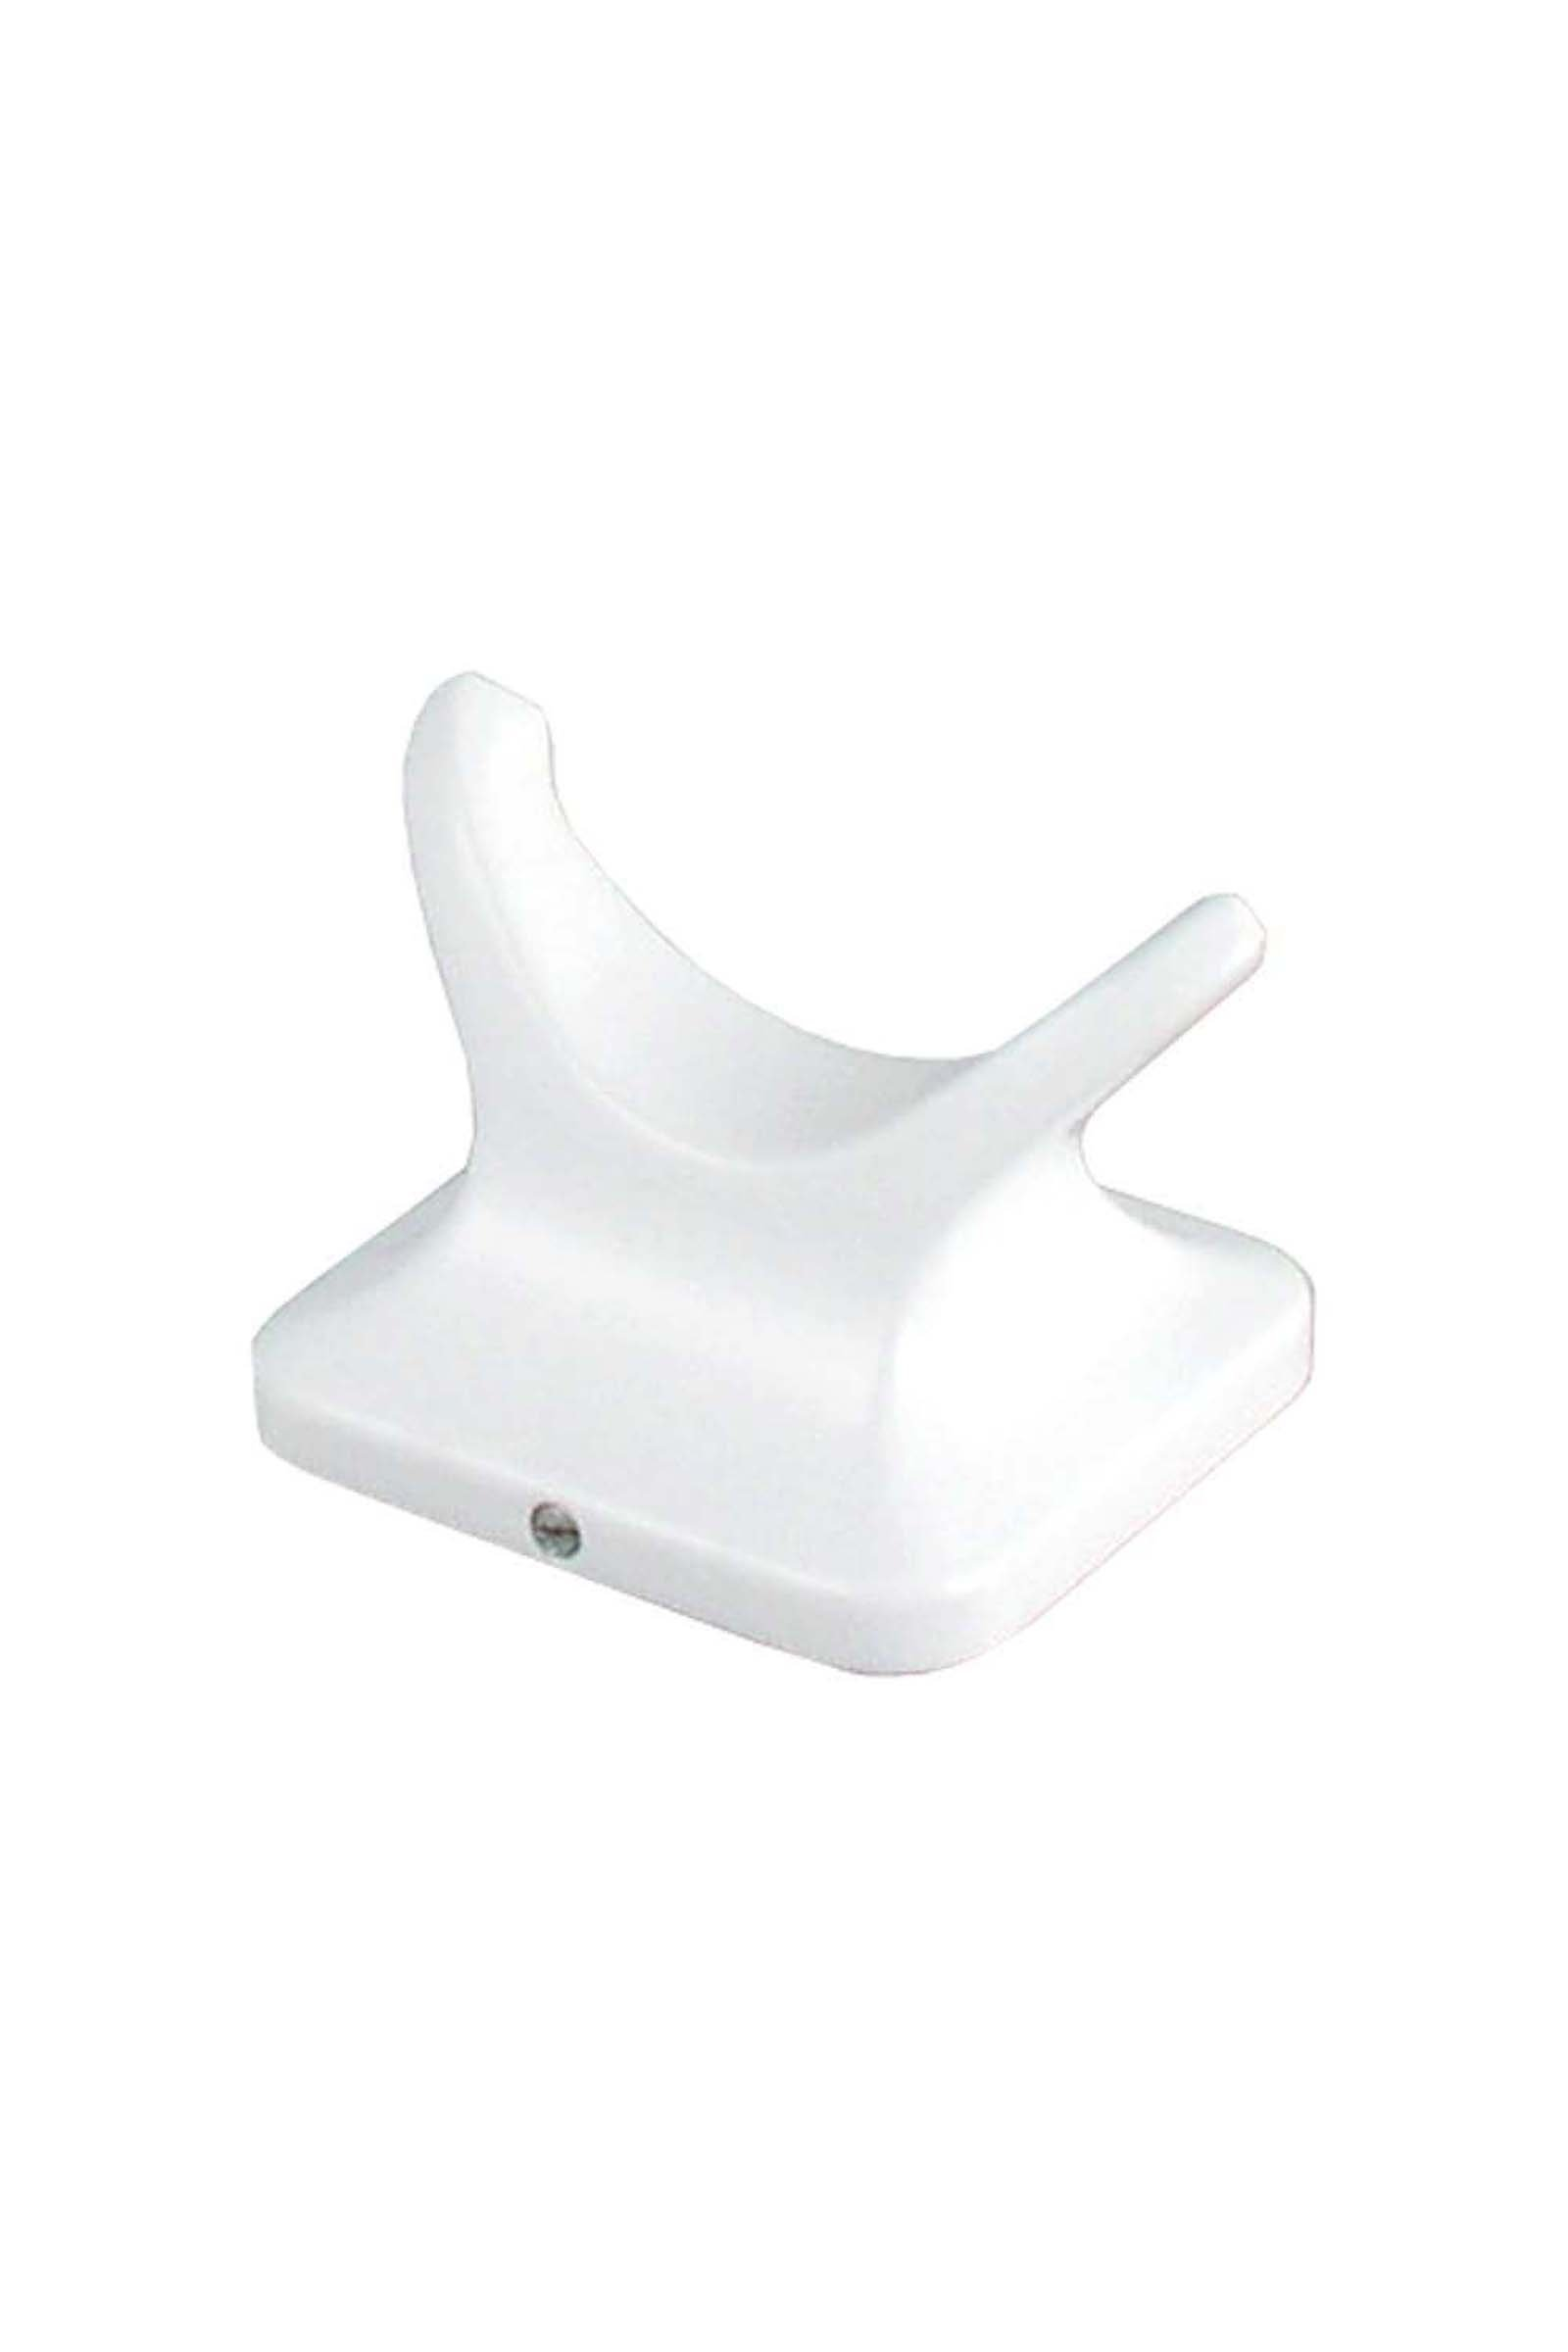 LDR 162 8662 Prestige Double Robe Hook, White